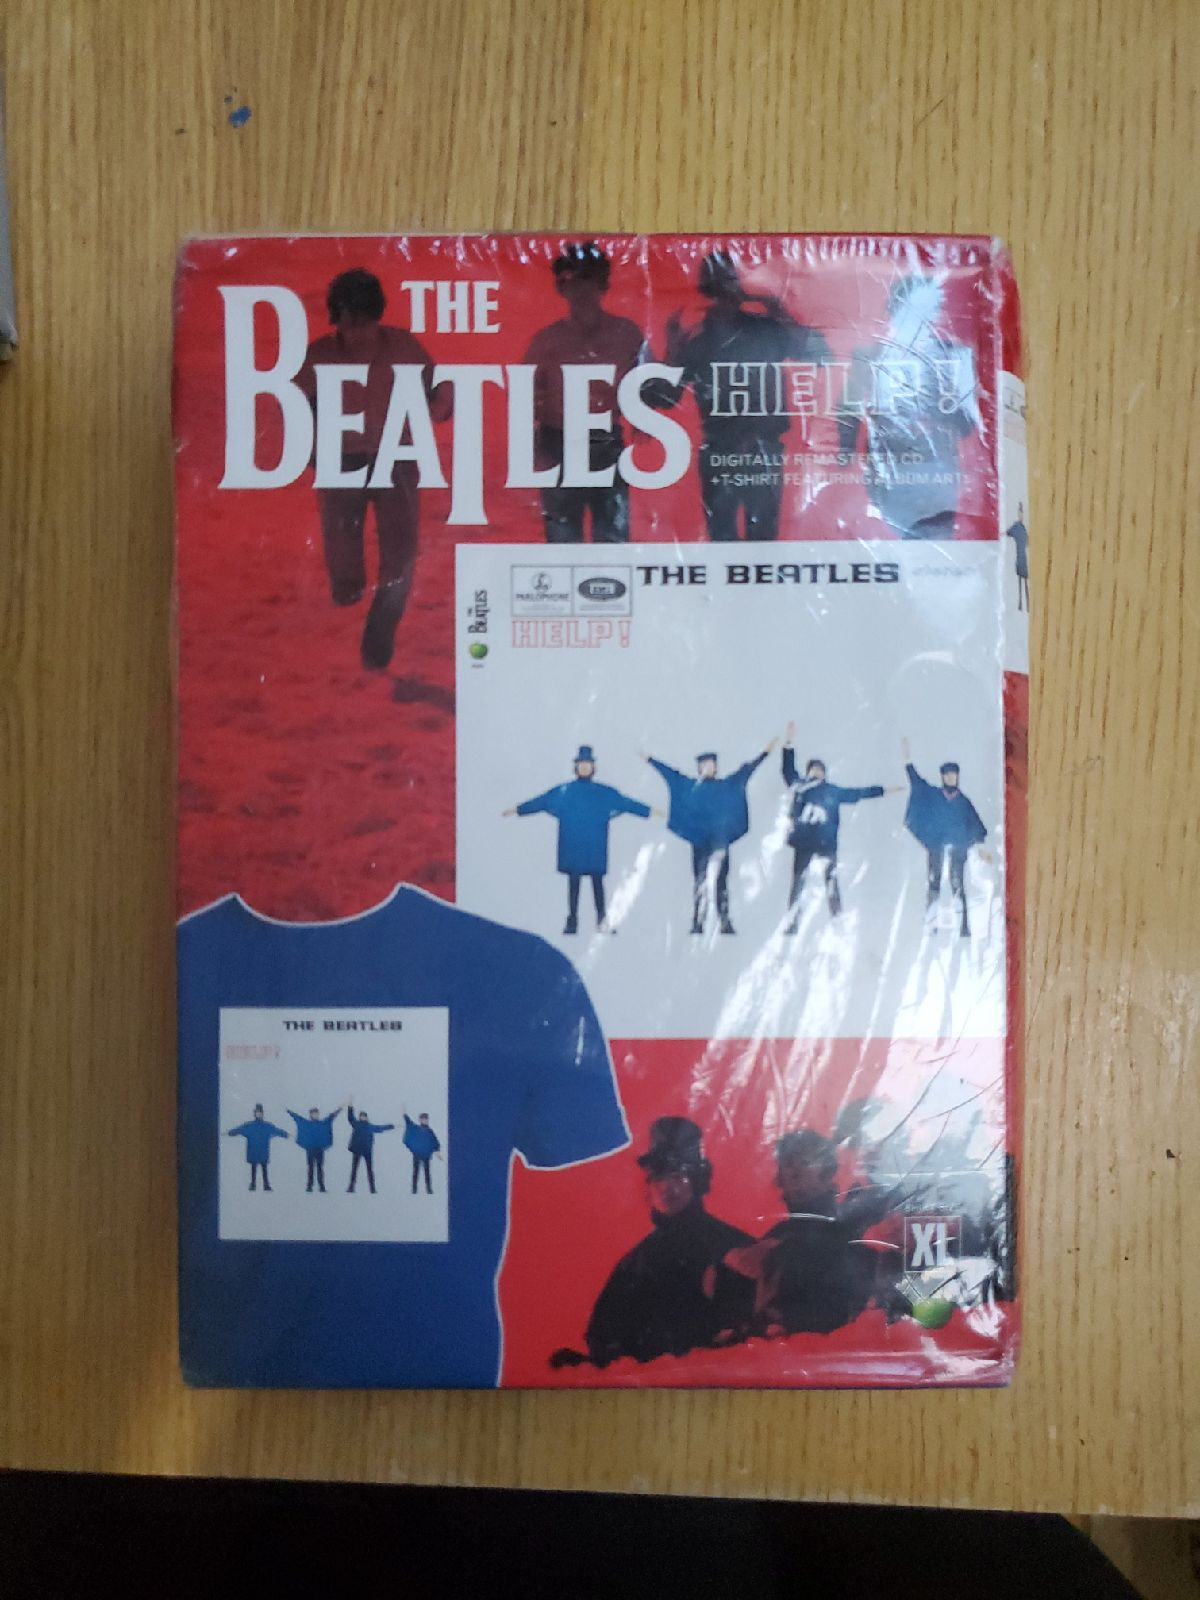 The Beatles HELP! Digitally Remastered C